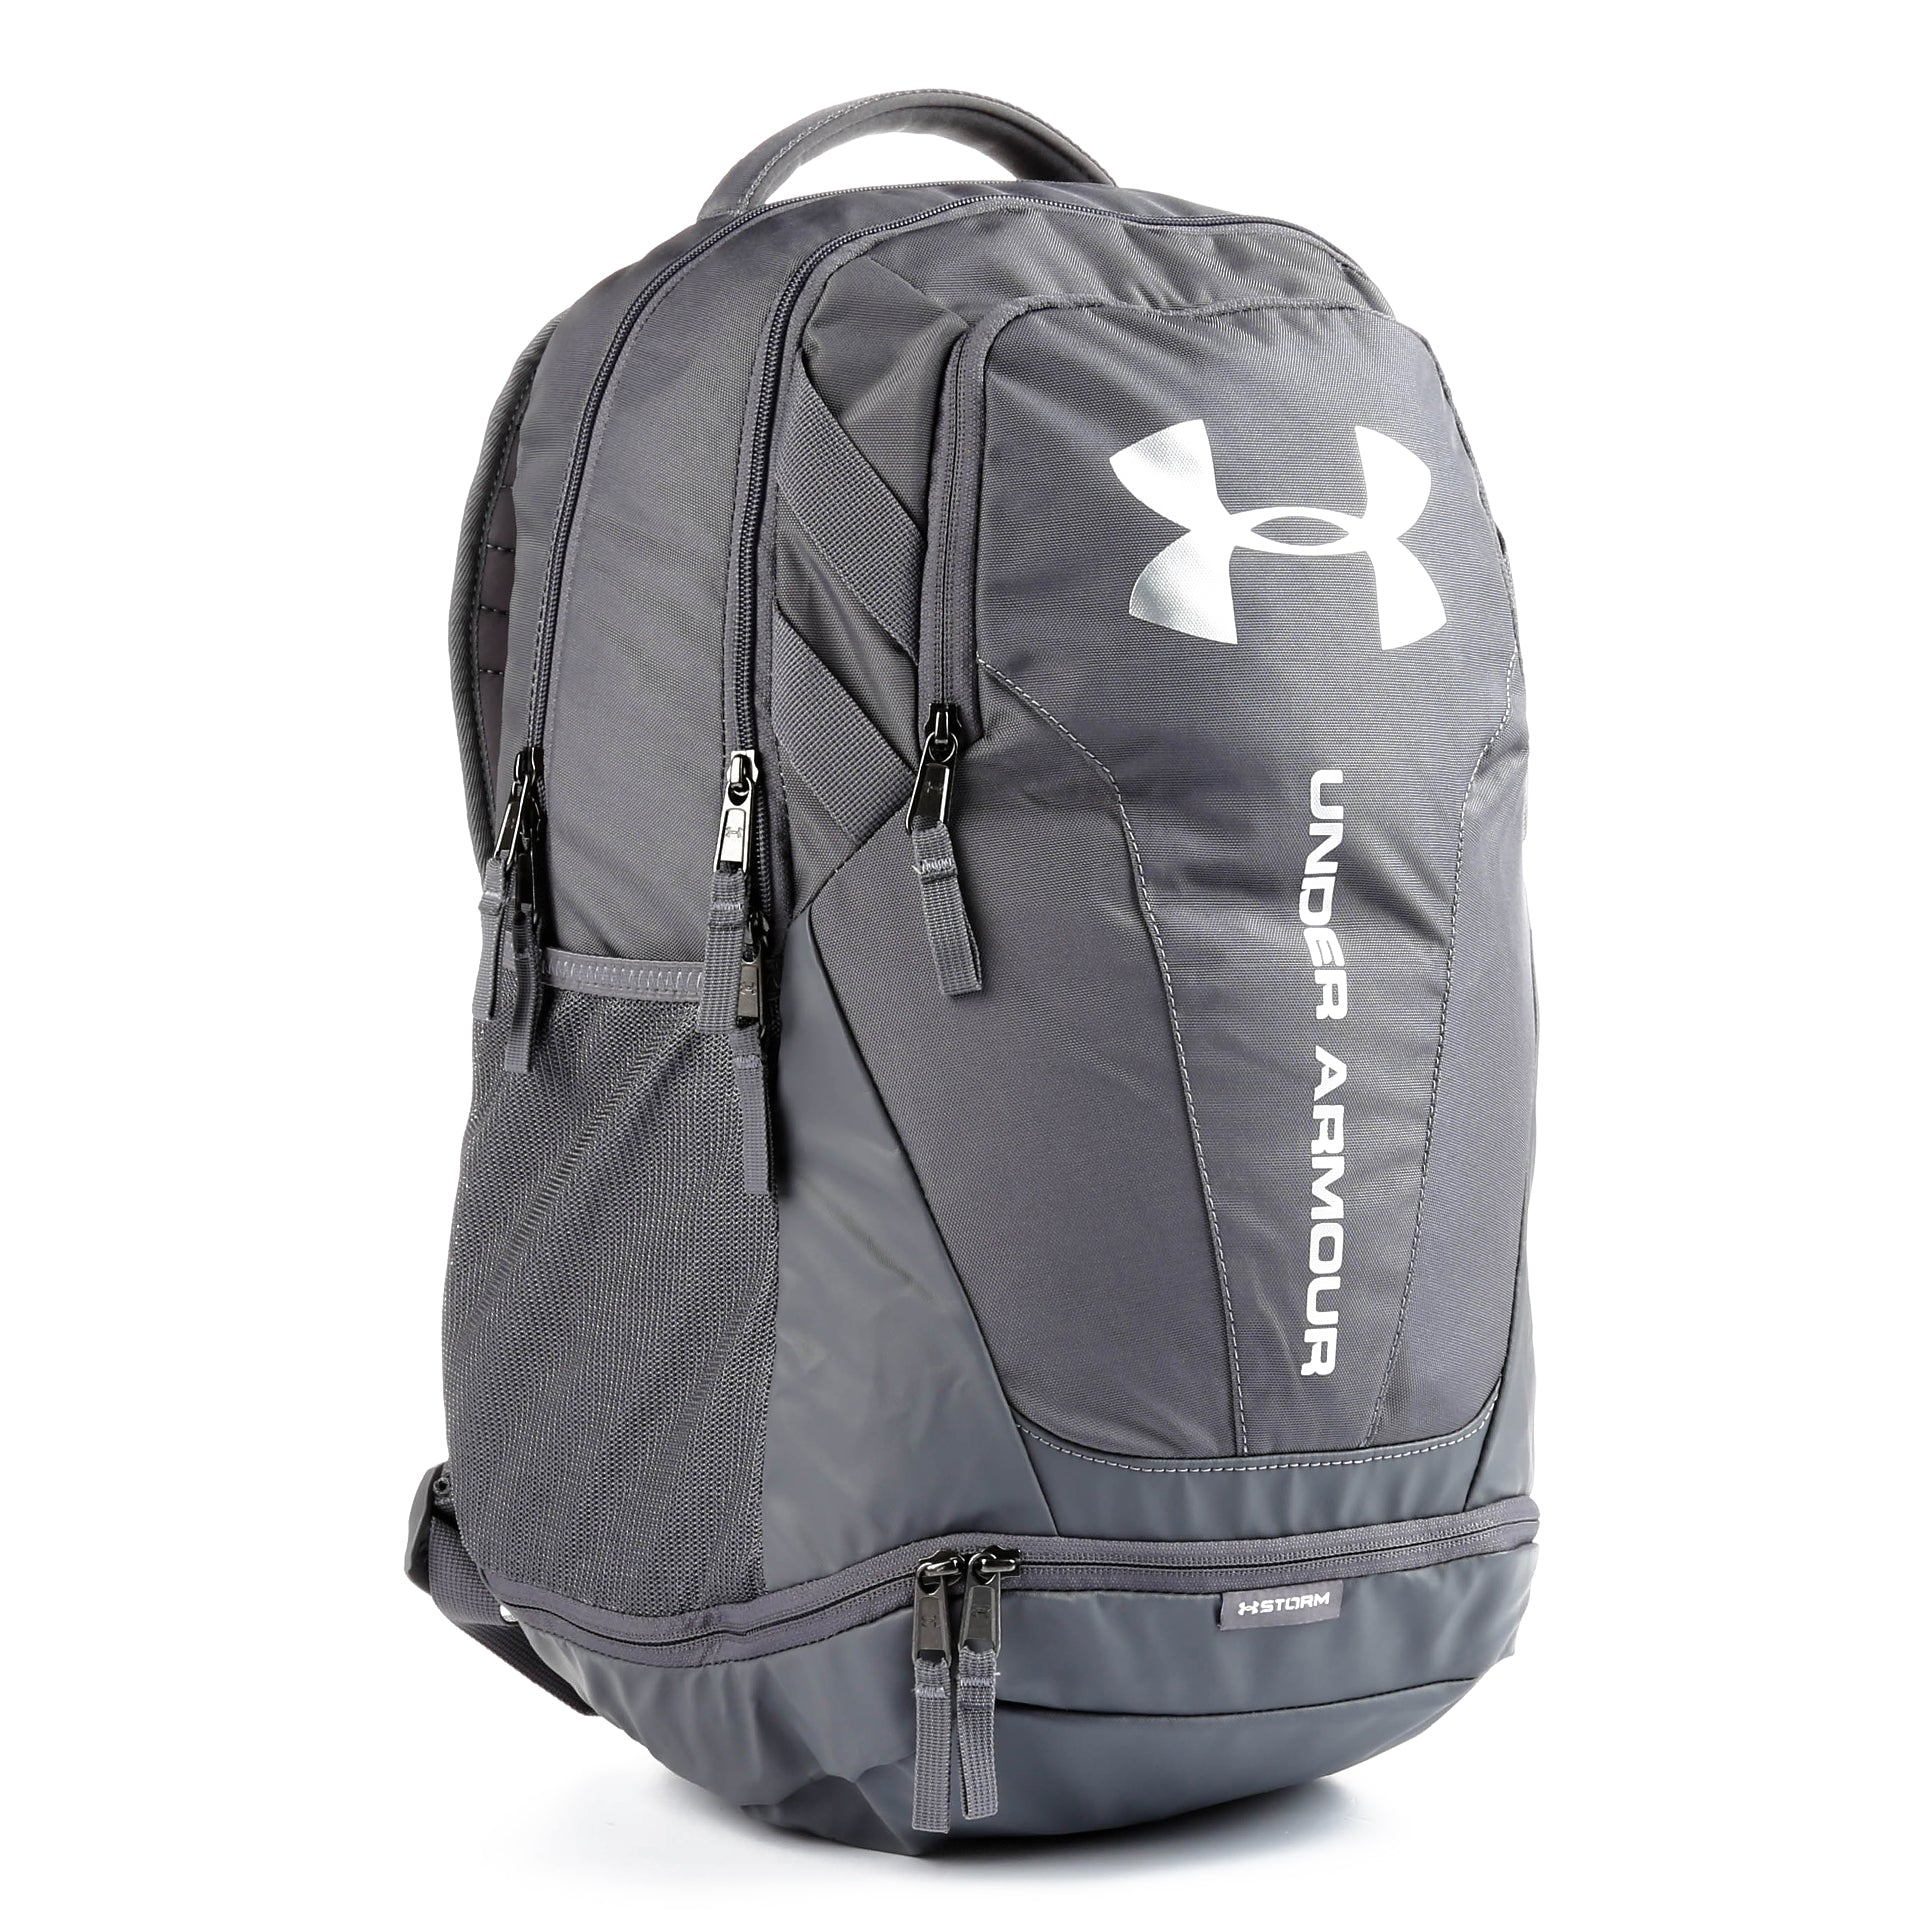 trigo Joya Crítico  Under Armour Hustle 3.0 Backpack - Graphite - New Star